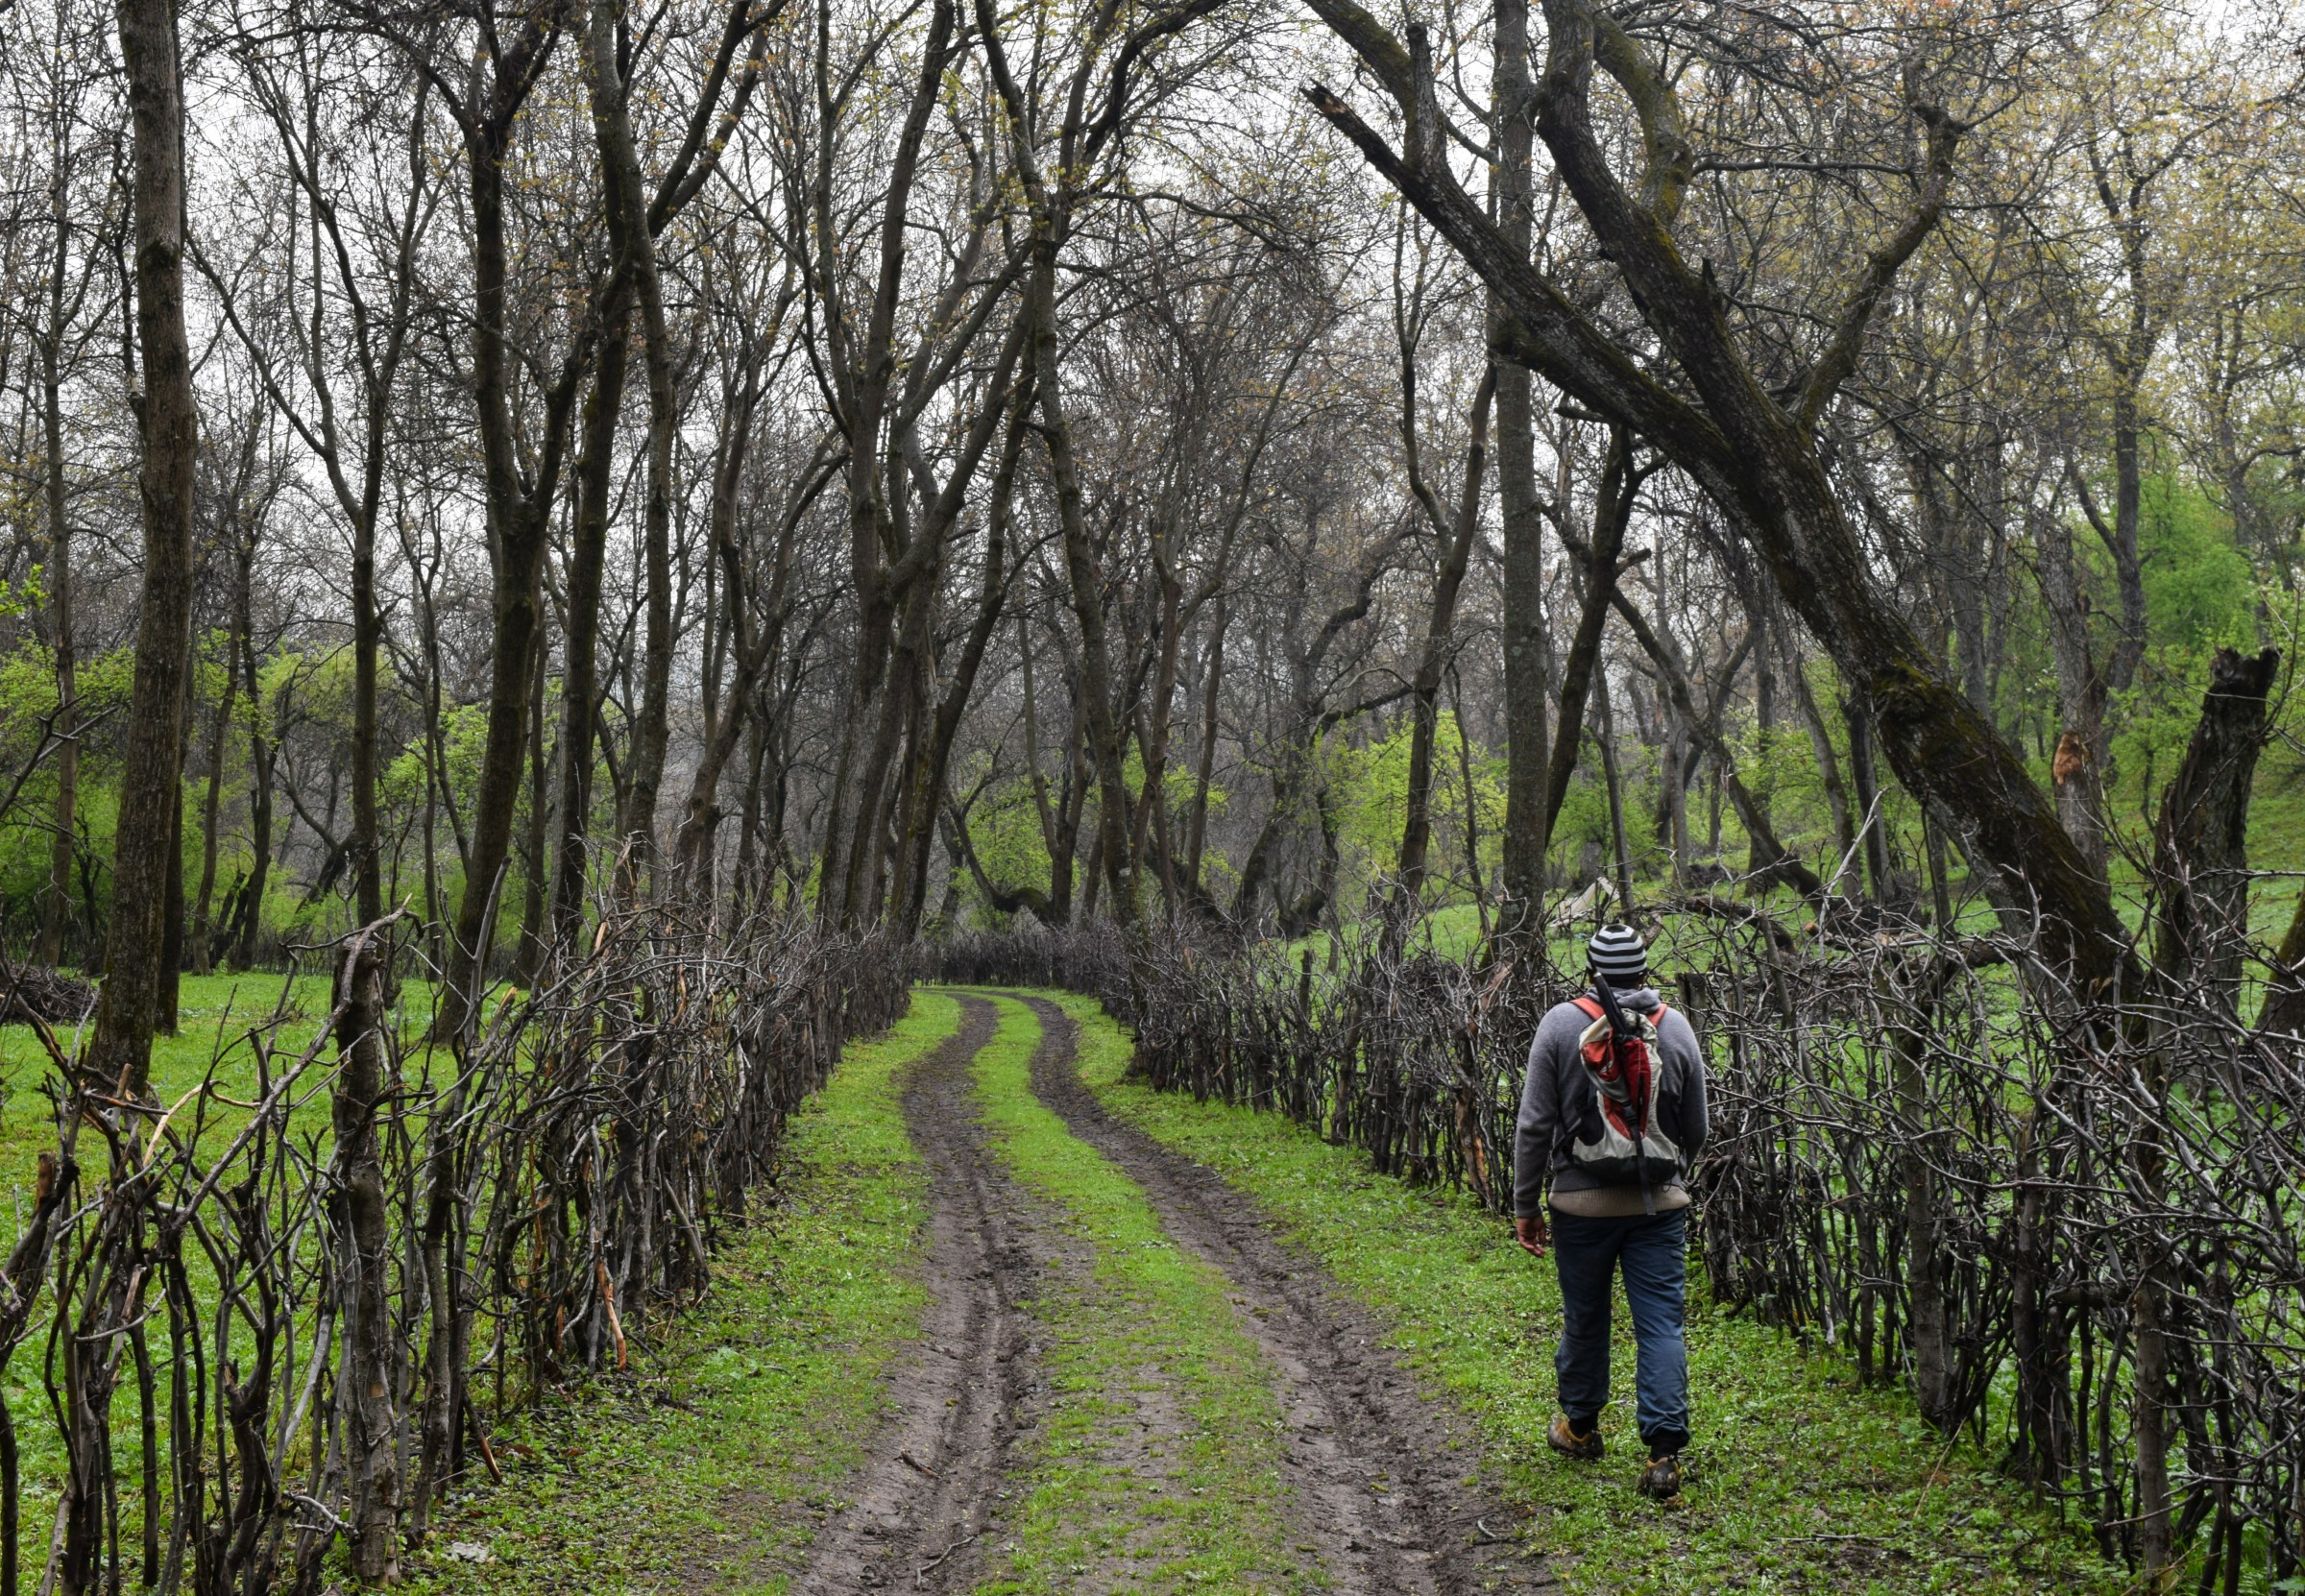 Inside the World's Largest Walnut Forest